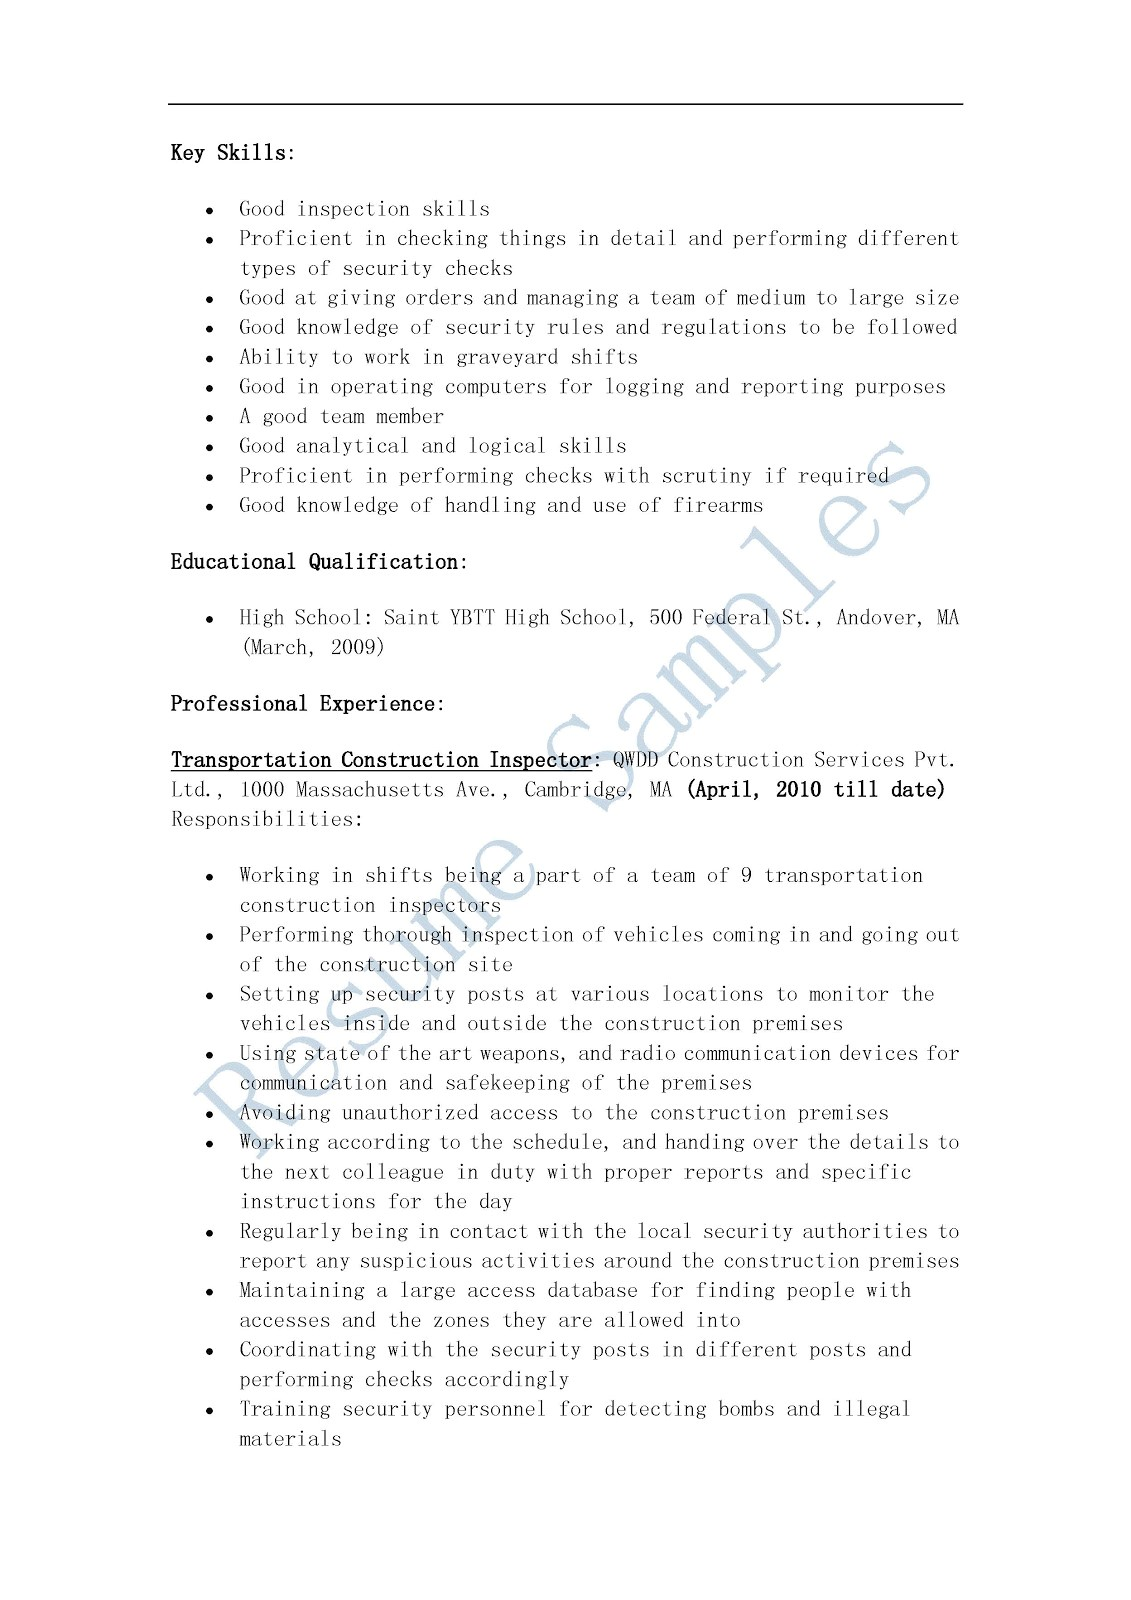 Building Material Sales Resume Sample Building Material Sales Cover Letter Pollutionvideohive